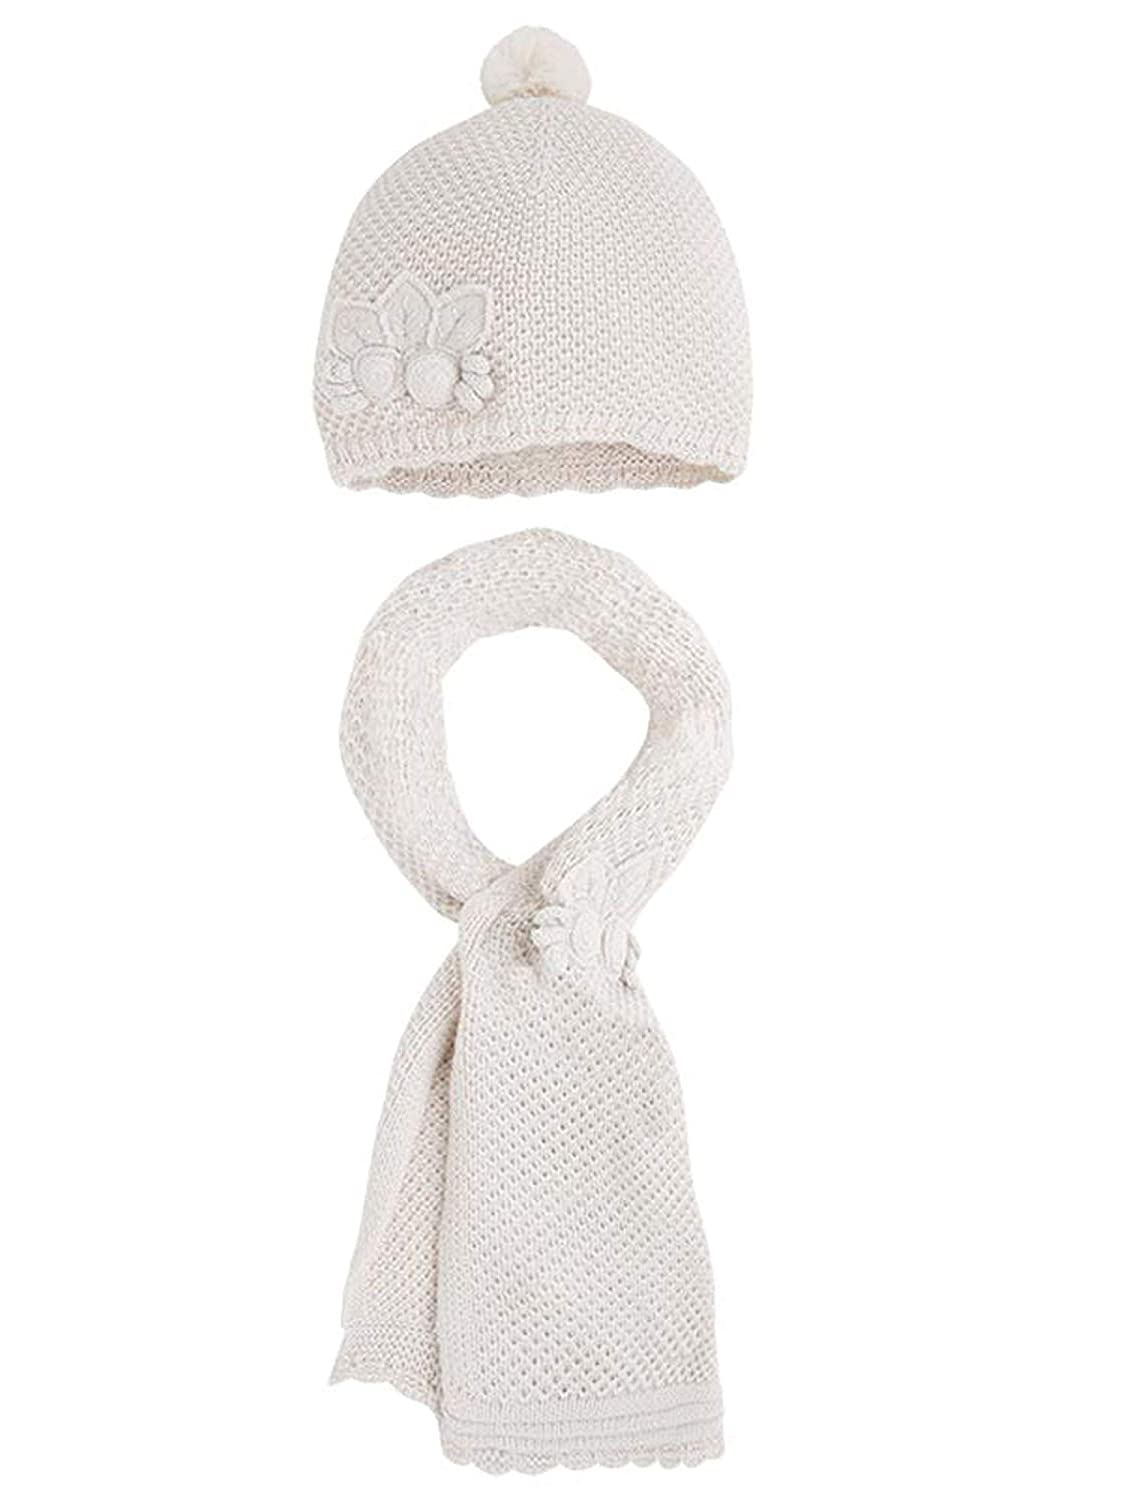 Little Girls Flower Applique Angora Blend Knit Hat//Scarf Set